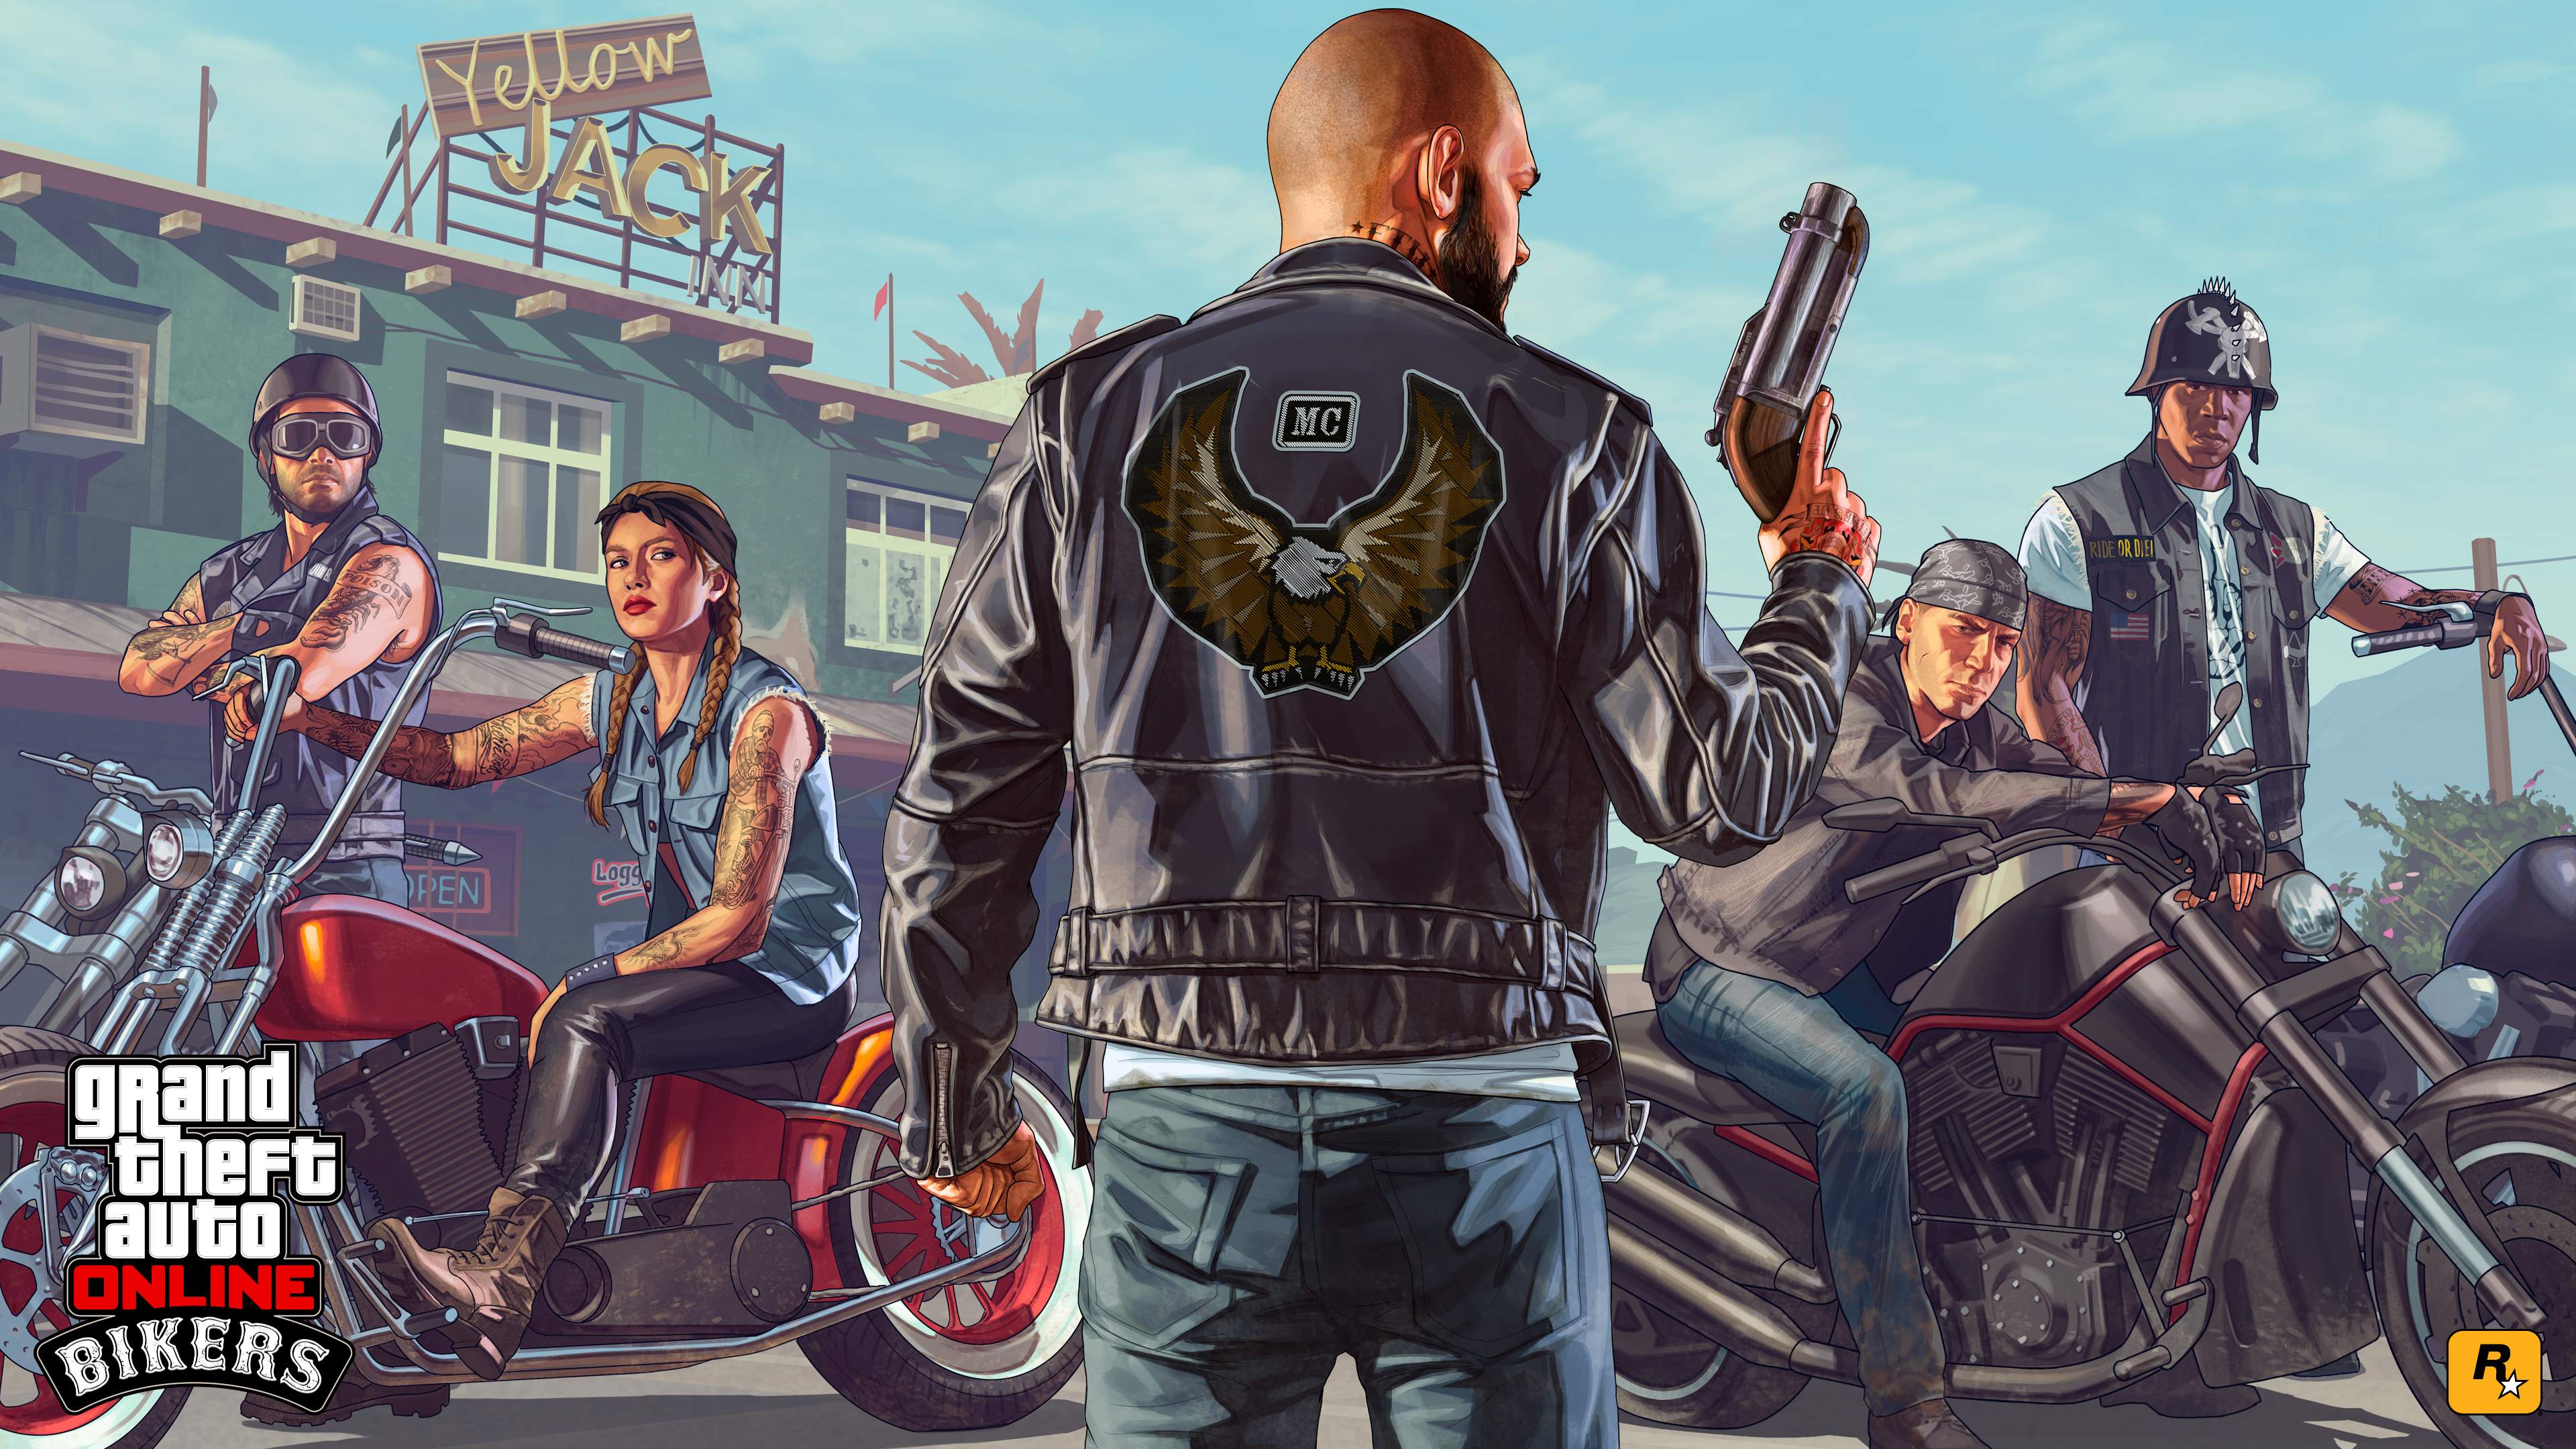 1920x1080 gta v online biker dlc laptop full hd 1080p hd 4k